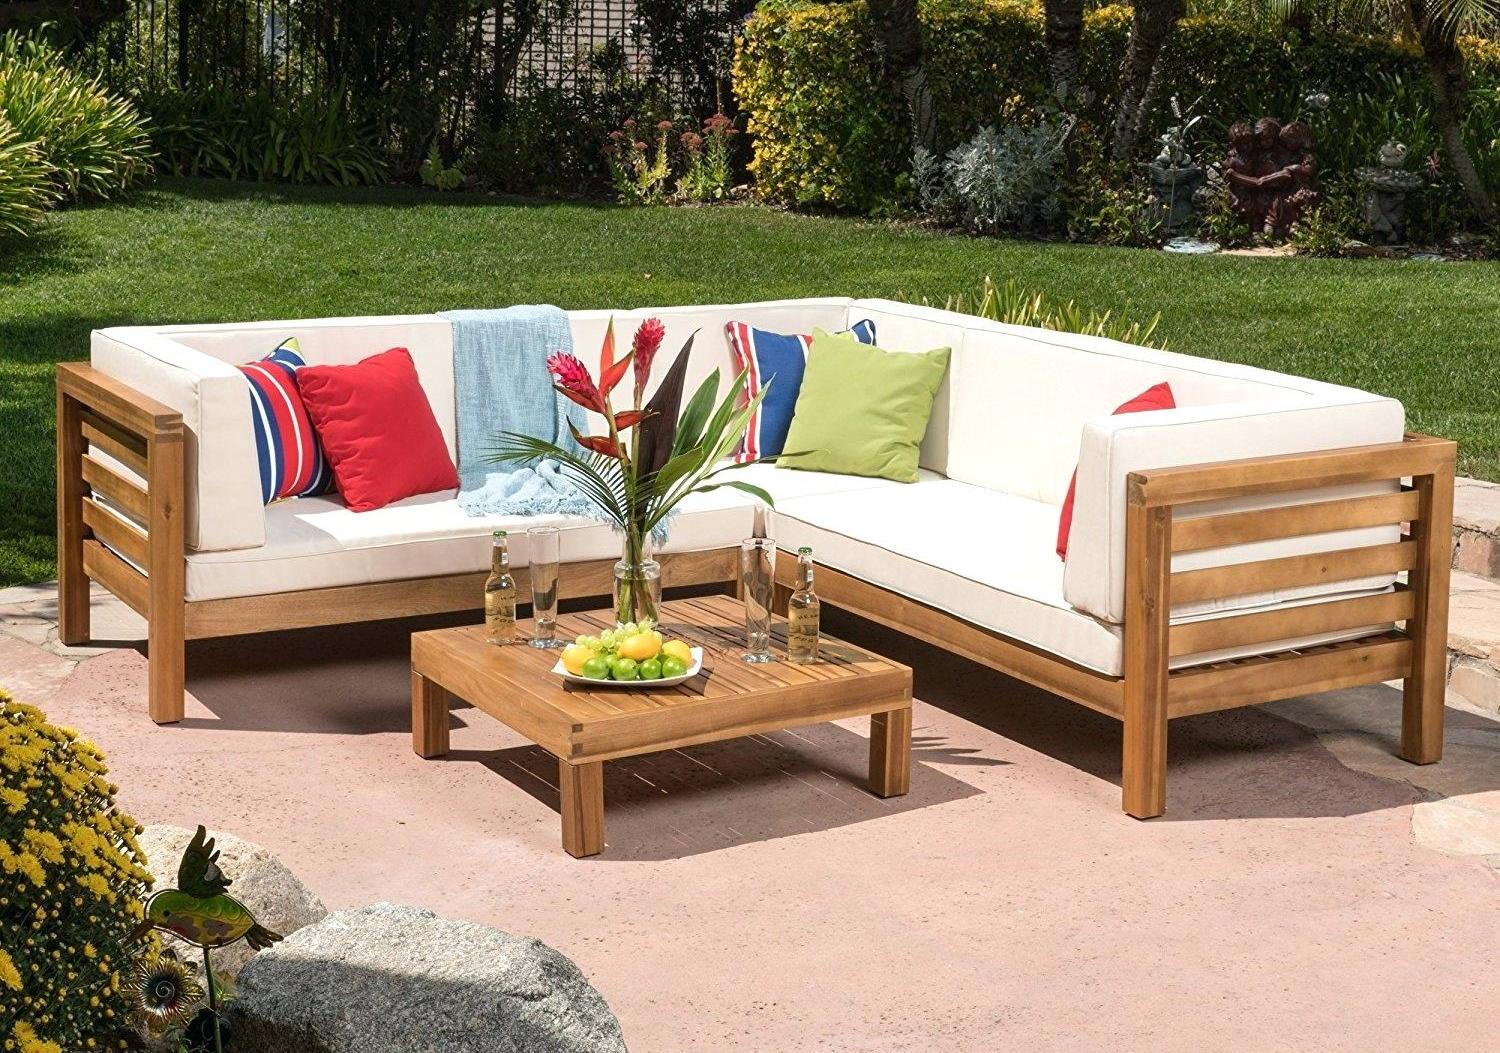 Outdoor Möbel Sale Outdoor Seating Sale Save Over 50 On 4 Piece Sets The Krazy